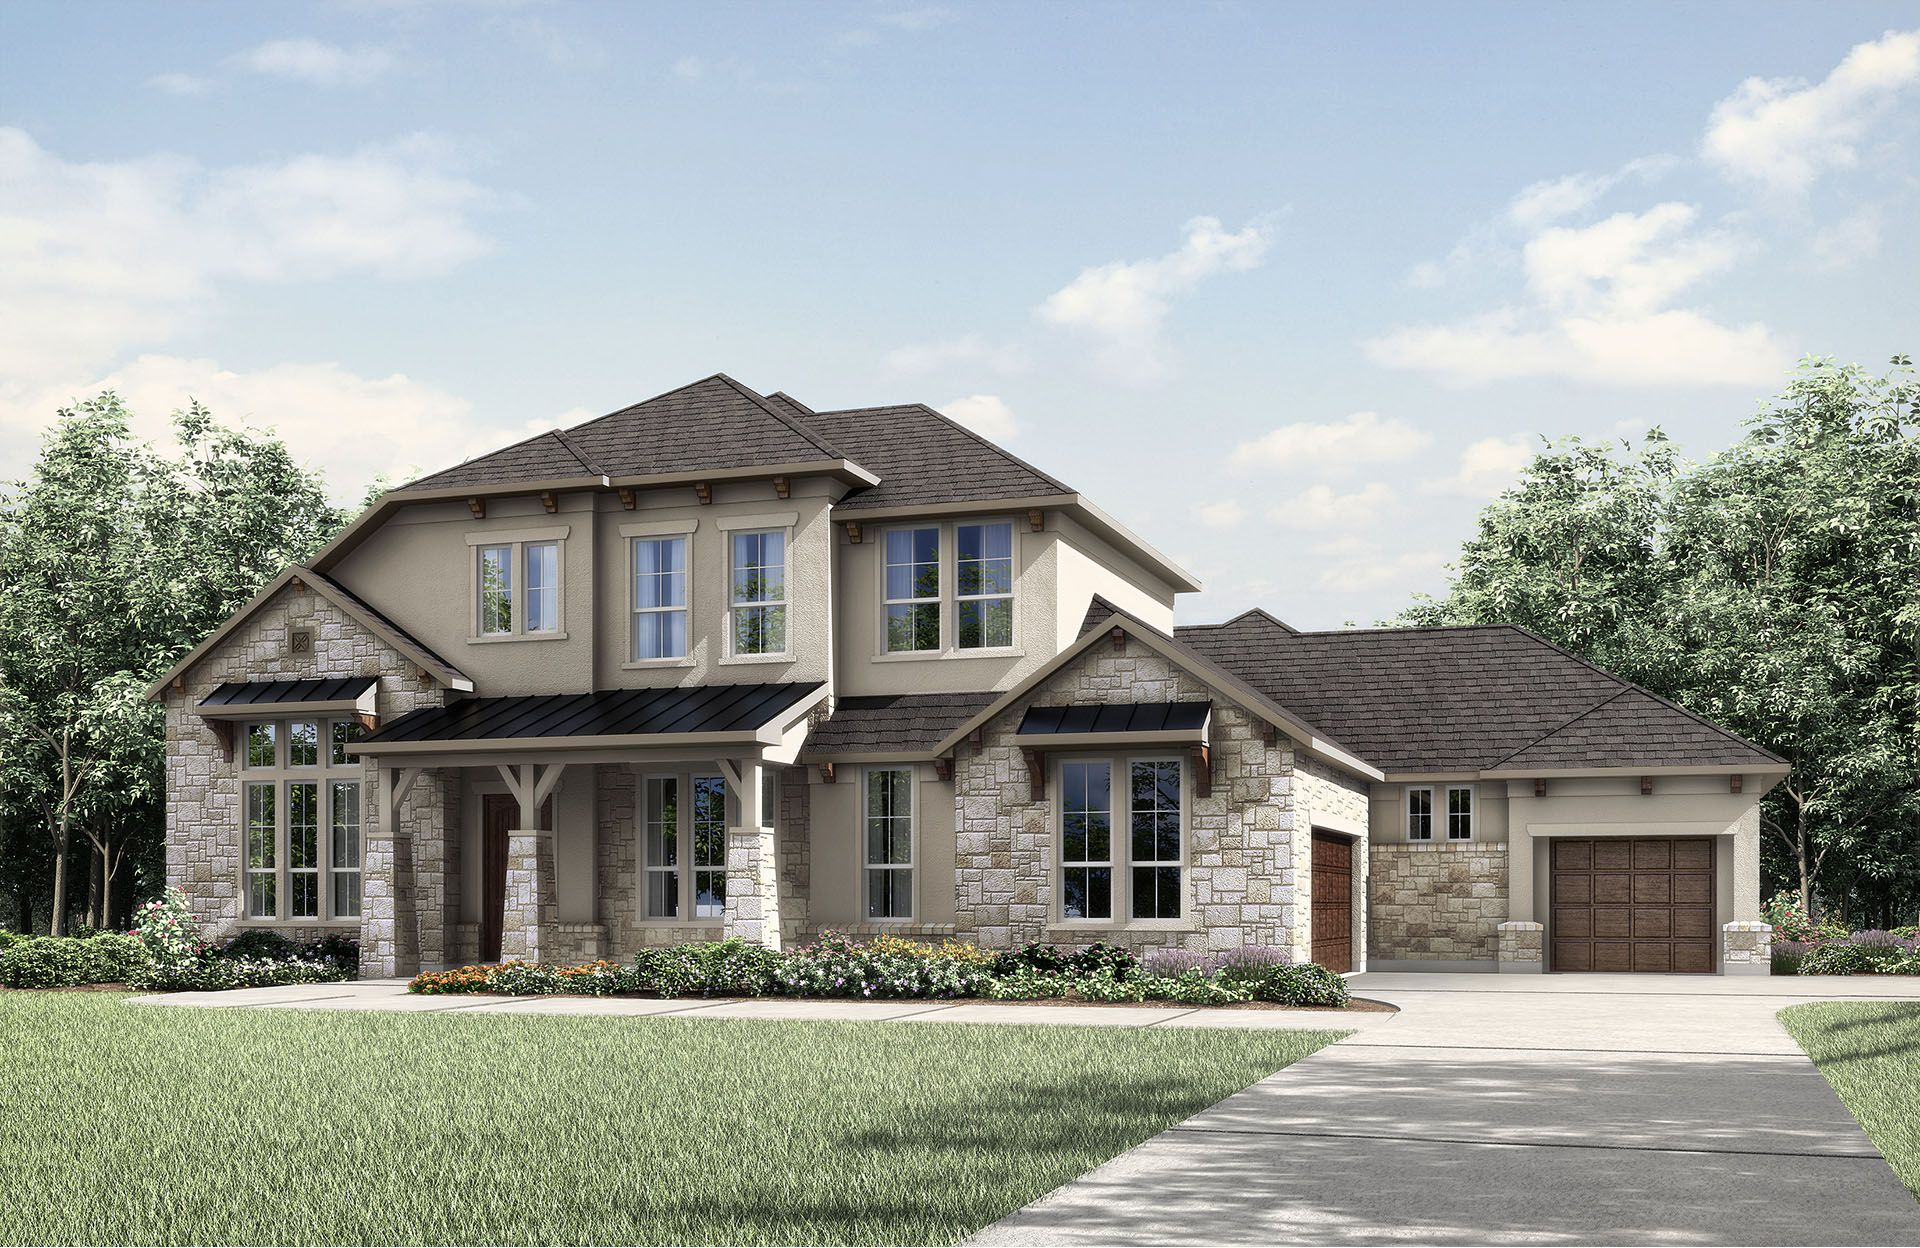 Single Family for Active at Colinas Ii 321 Houston Loop Liberty Hill, Texas 78642 United States